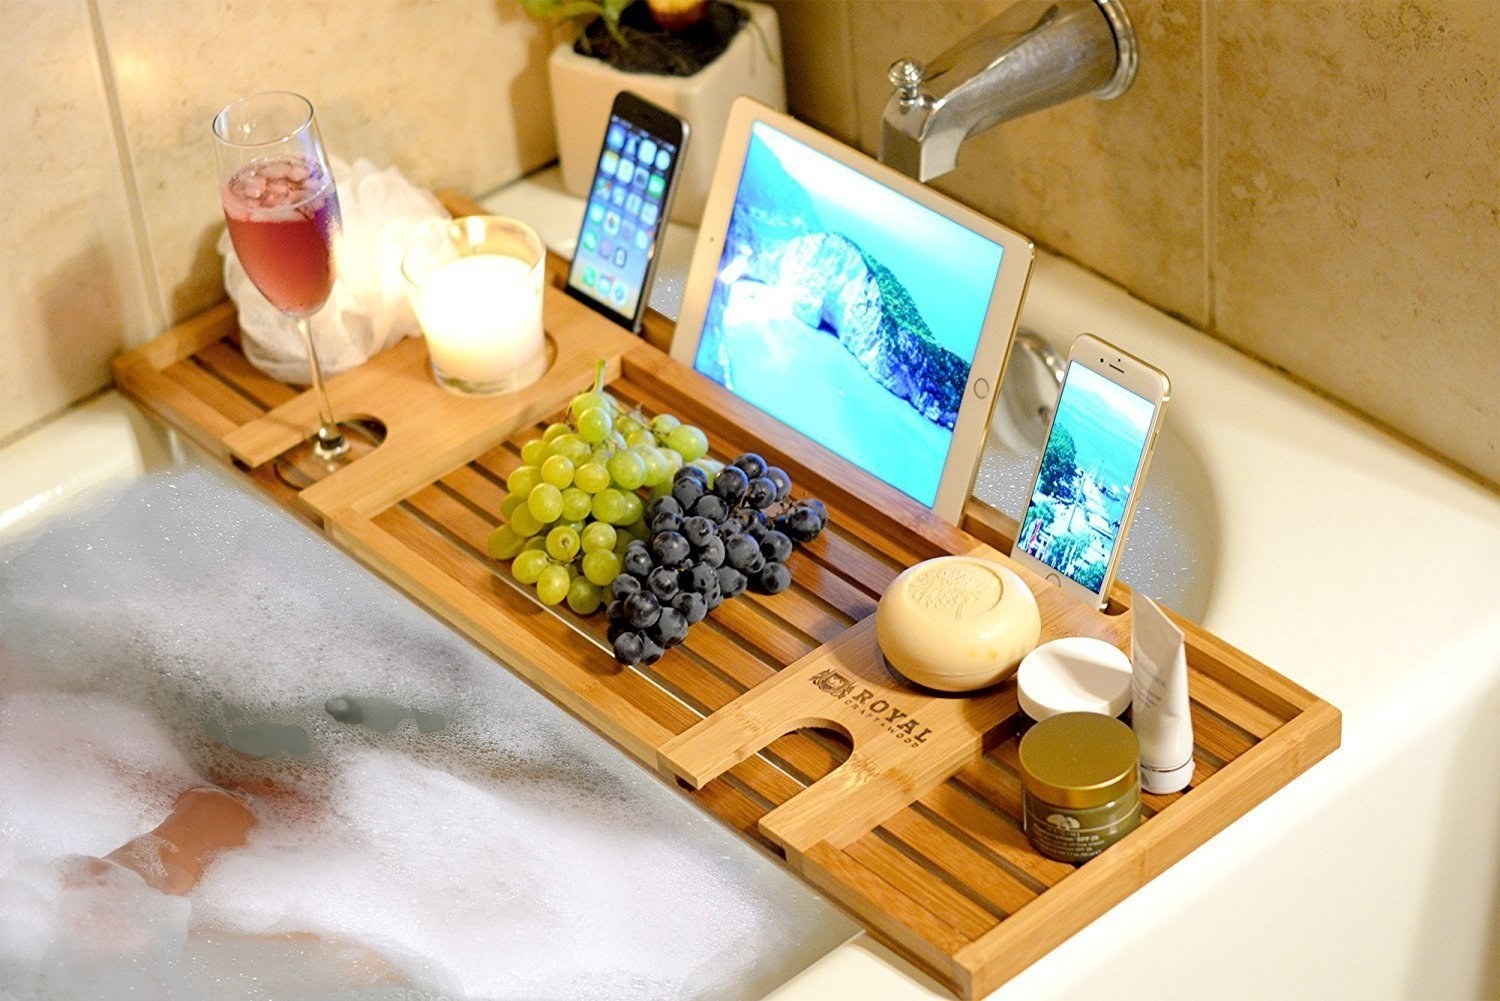 A bamboo bath tray holding grapes, a tablet, two phones, and various beauty products.